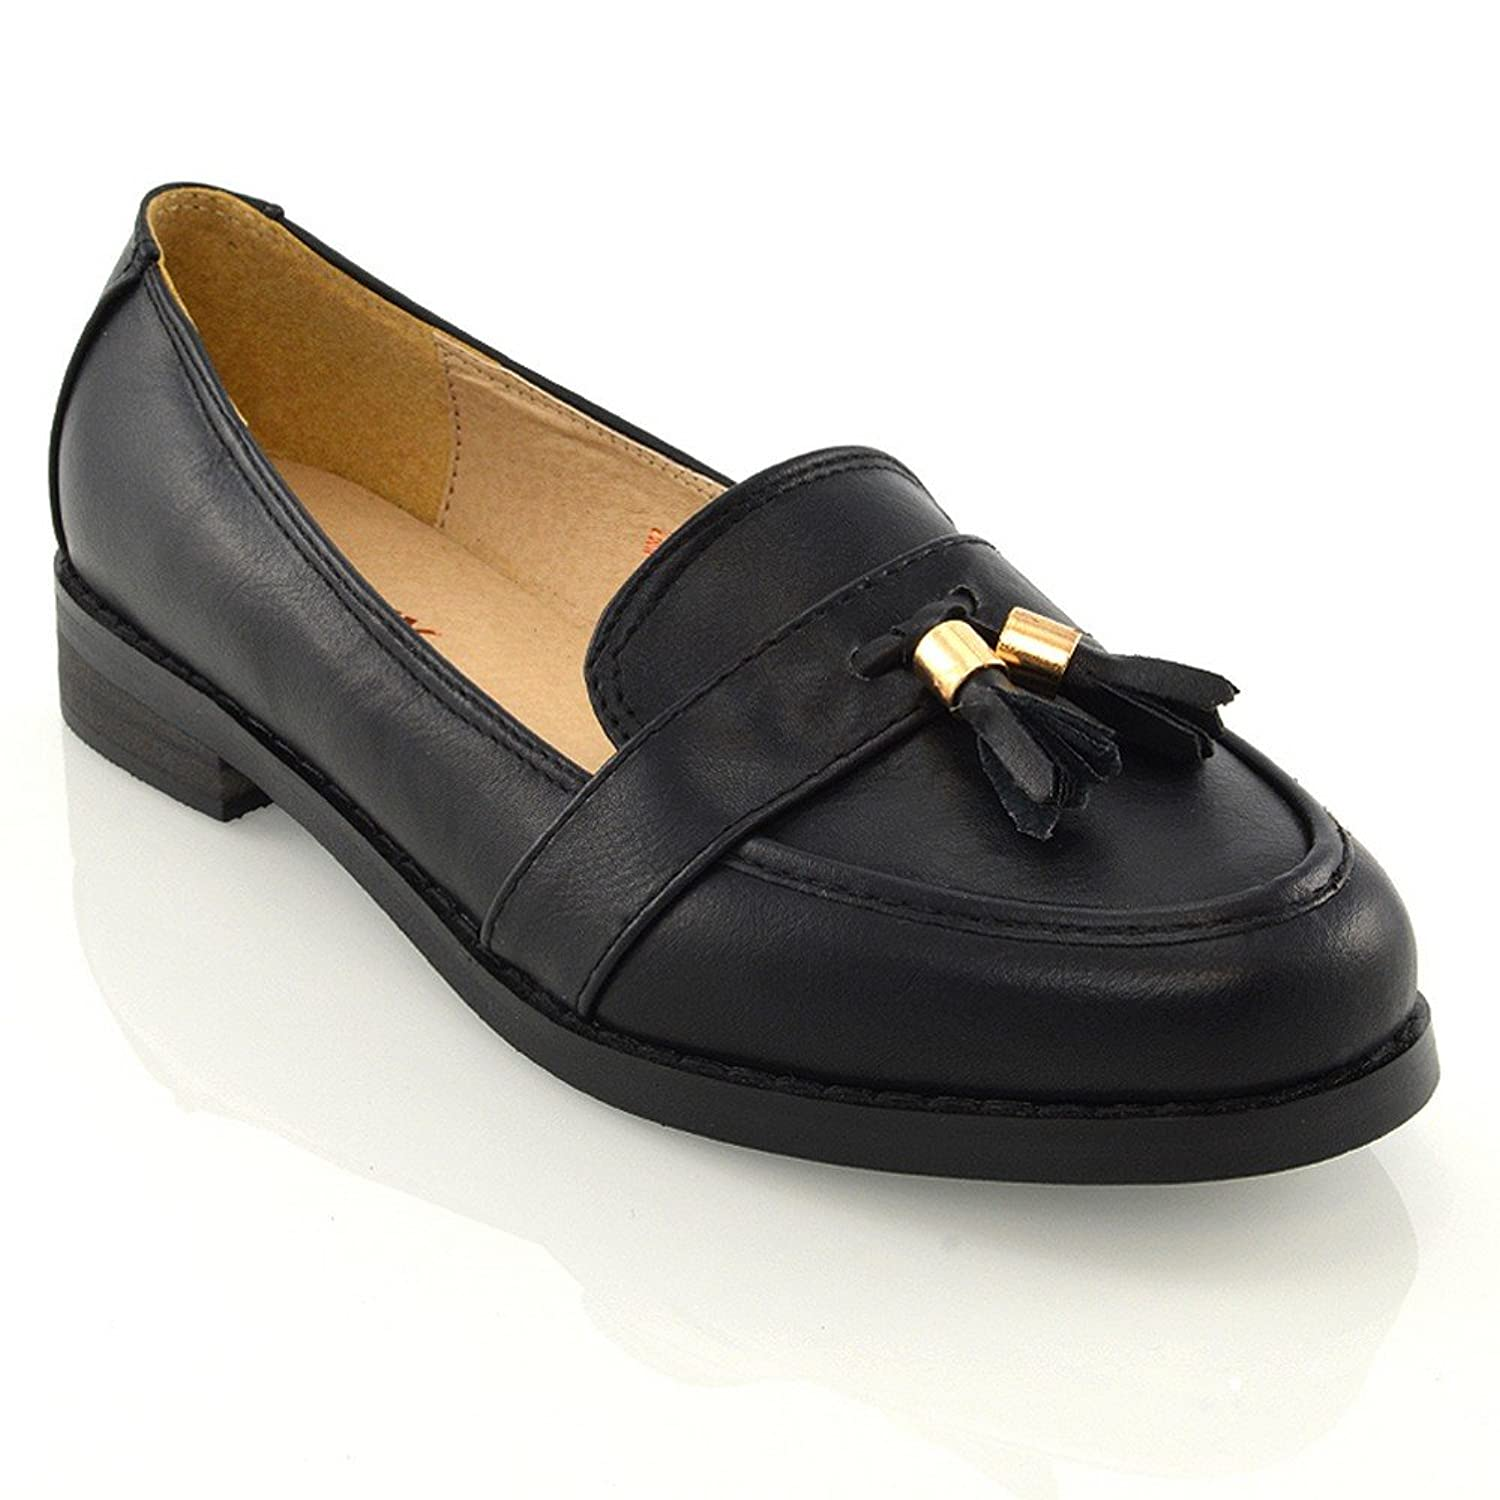 New Women/'s Comfy Shoes Ladies  Flat Oxford Work Loafers Brogues Pumps Size 3-8